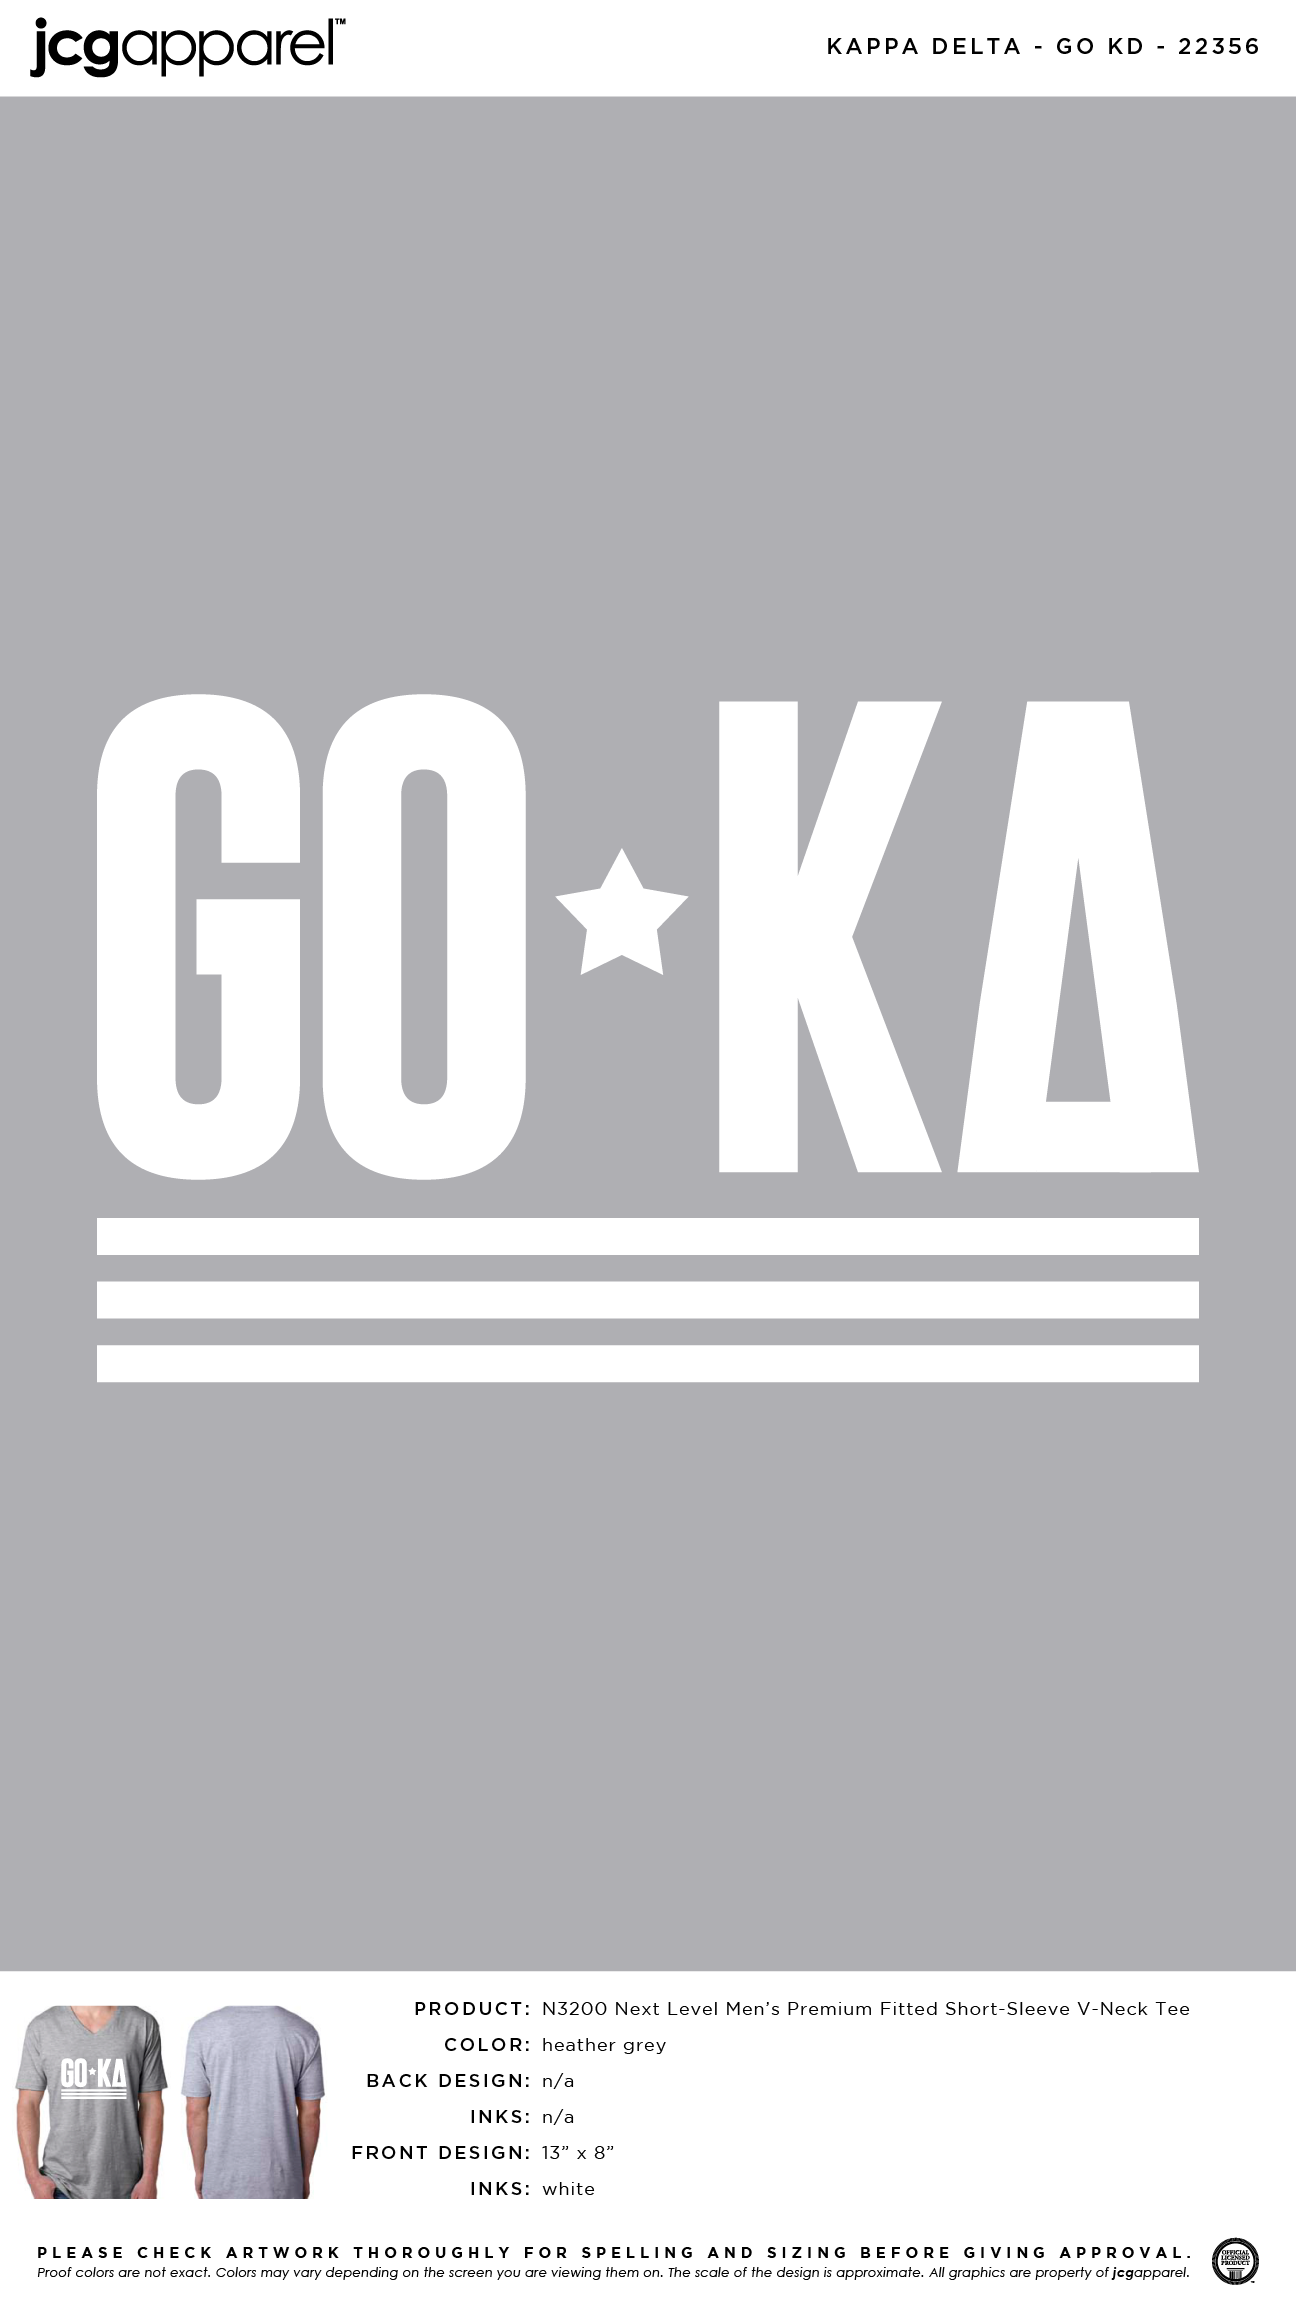 Greek Letter Before Kappa.Kappa Delta Go Kd Shirt Sorority Go Kd Greek Go Kd